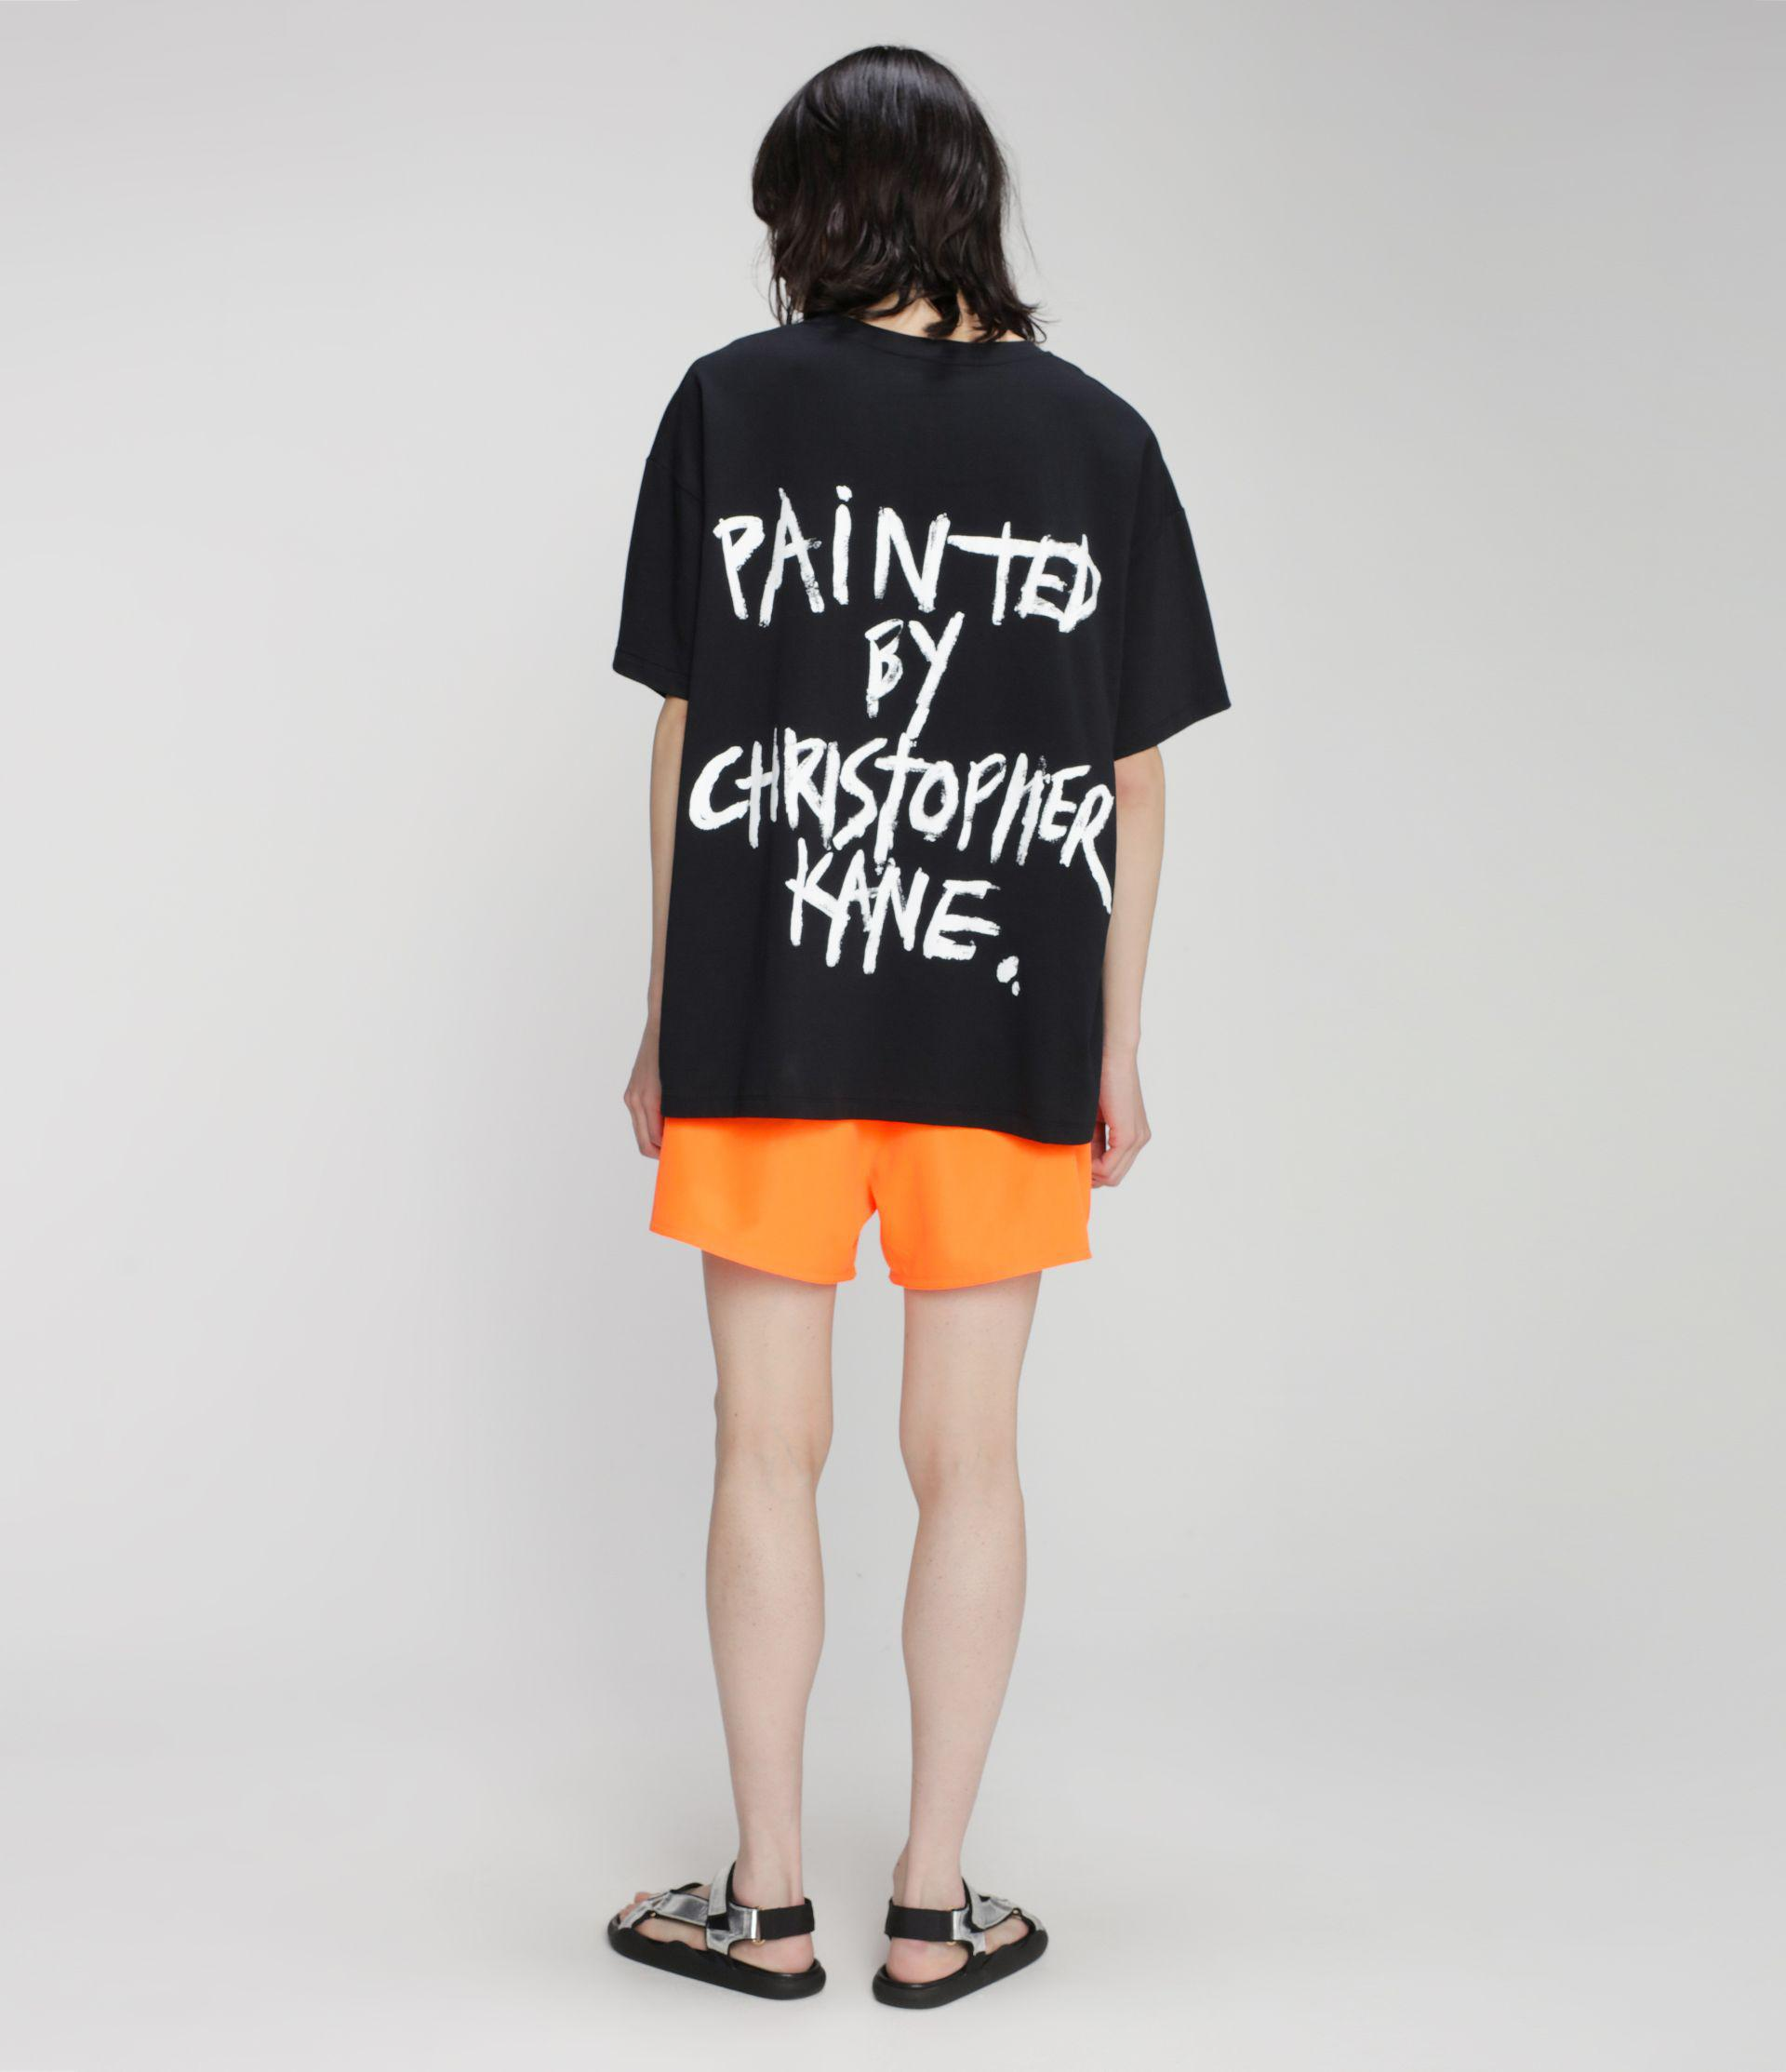 Painted by Christopher Kane t-shirt 3